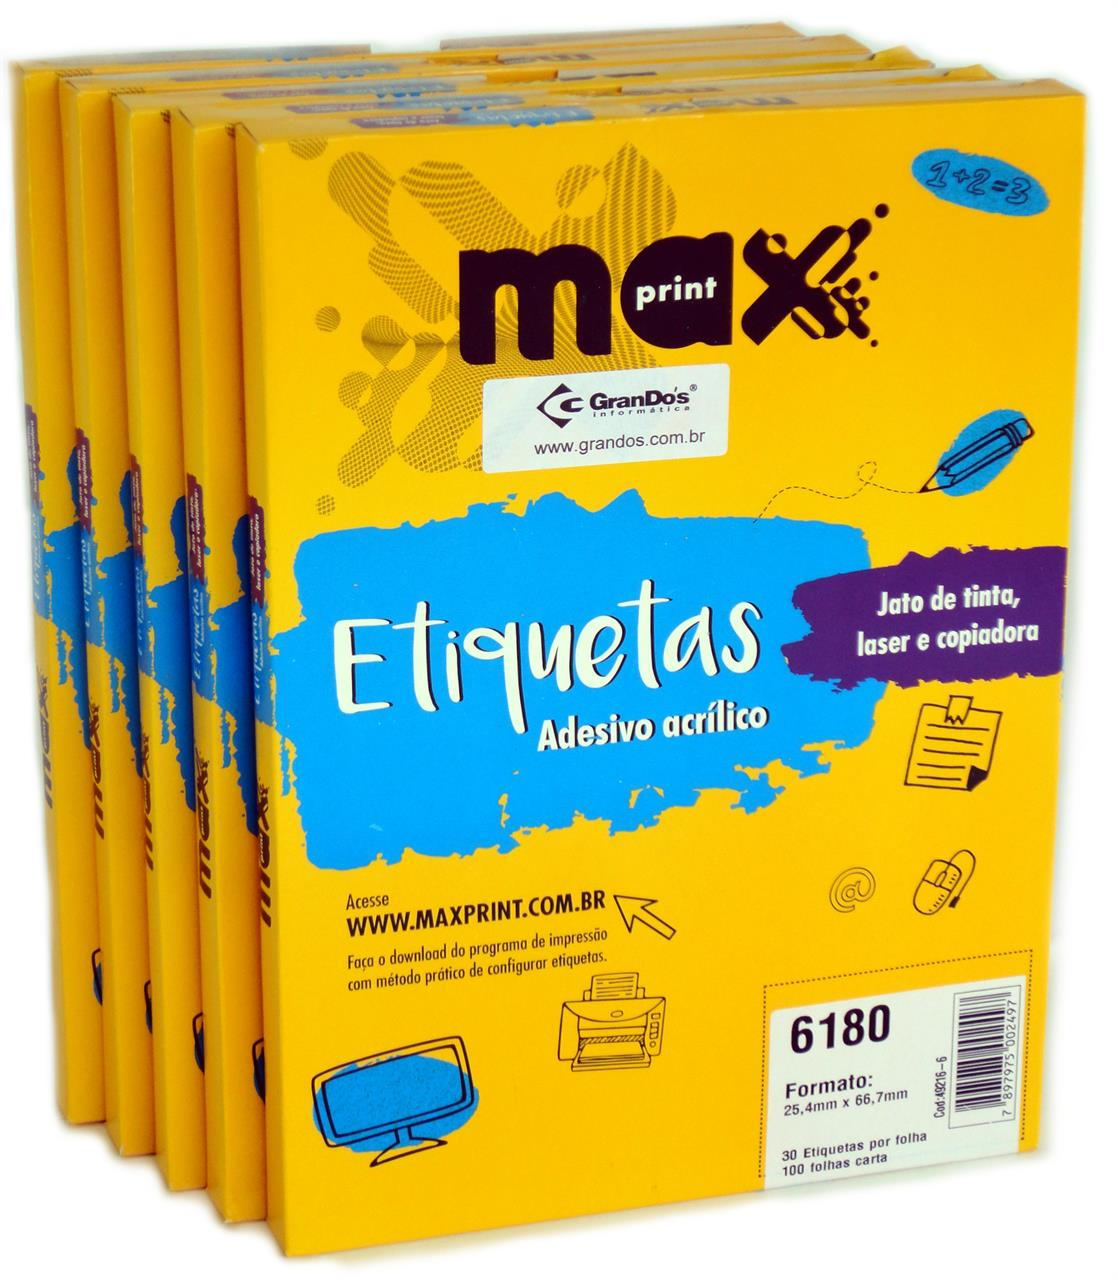 Etiquetas 6180 25,4mm x 66,7mm no Pack com 5 Caixas